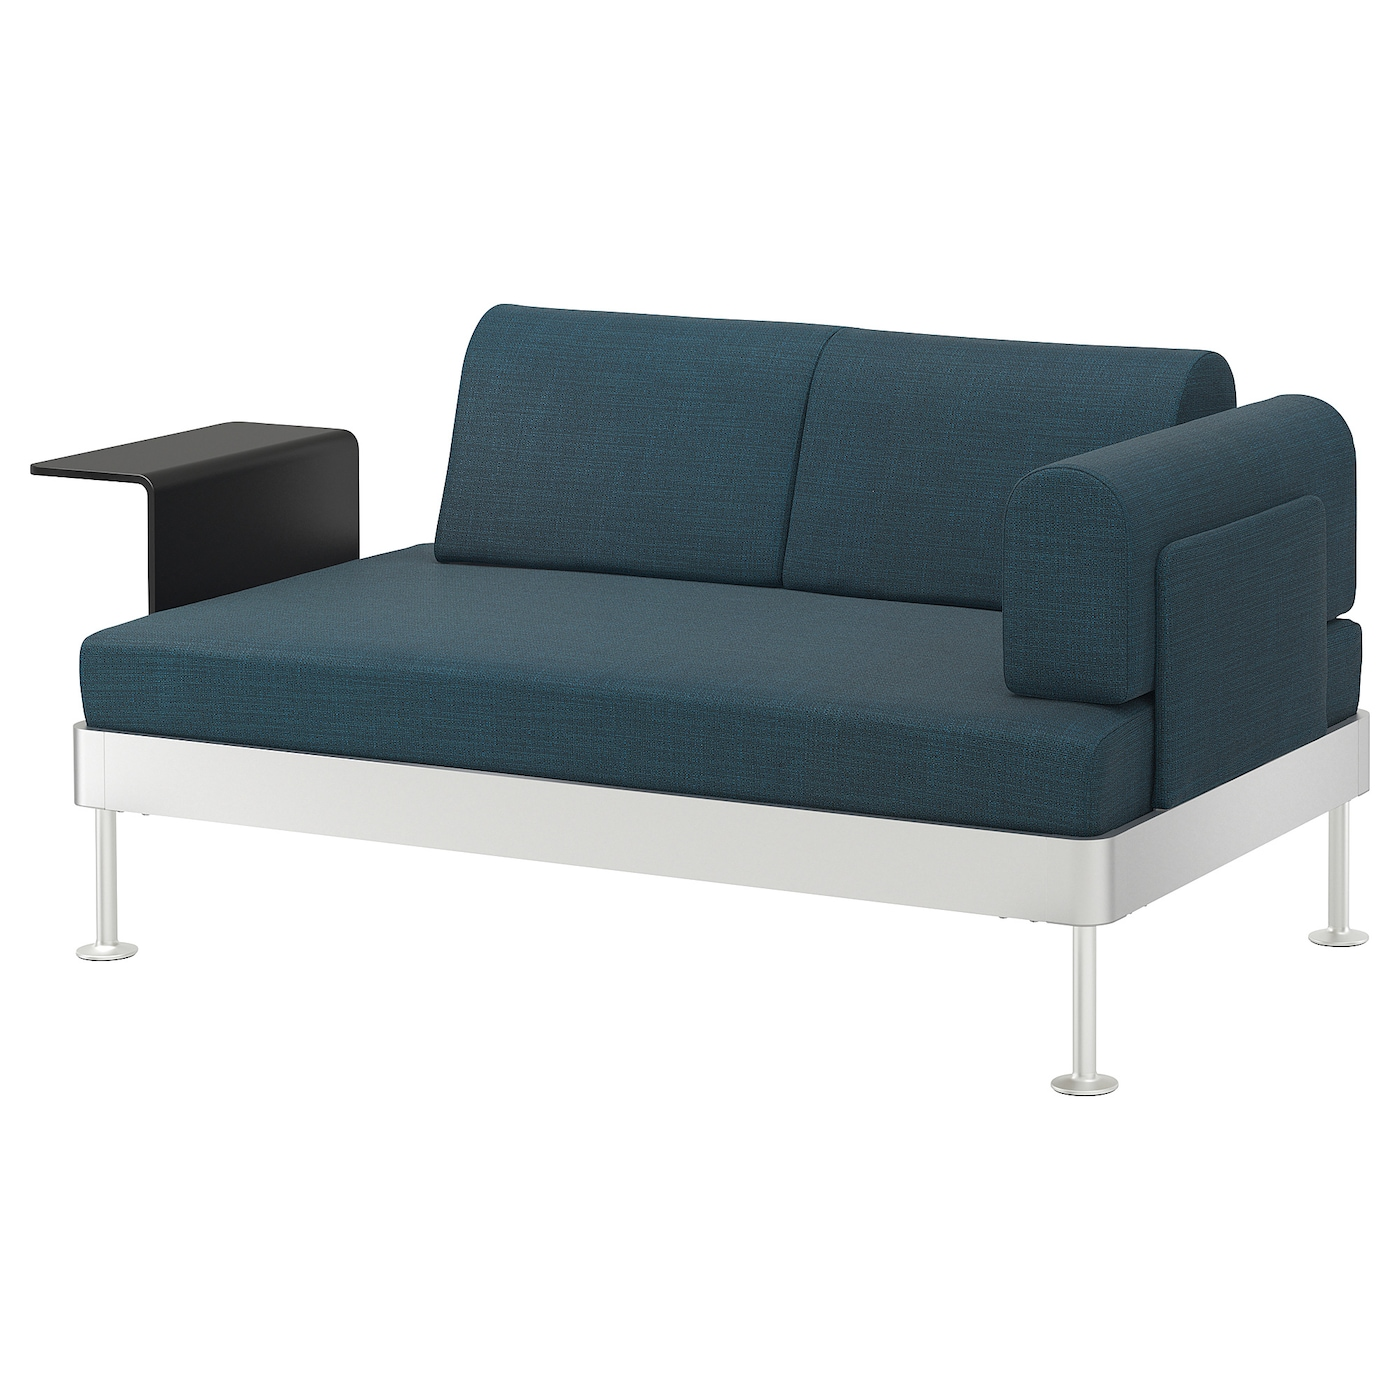 Delaktig 2 seat sofa with side table hillared dark blue ikea Rotes sofa kiel